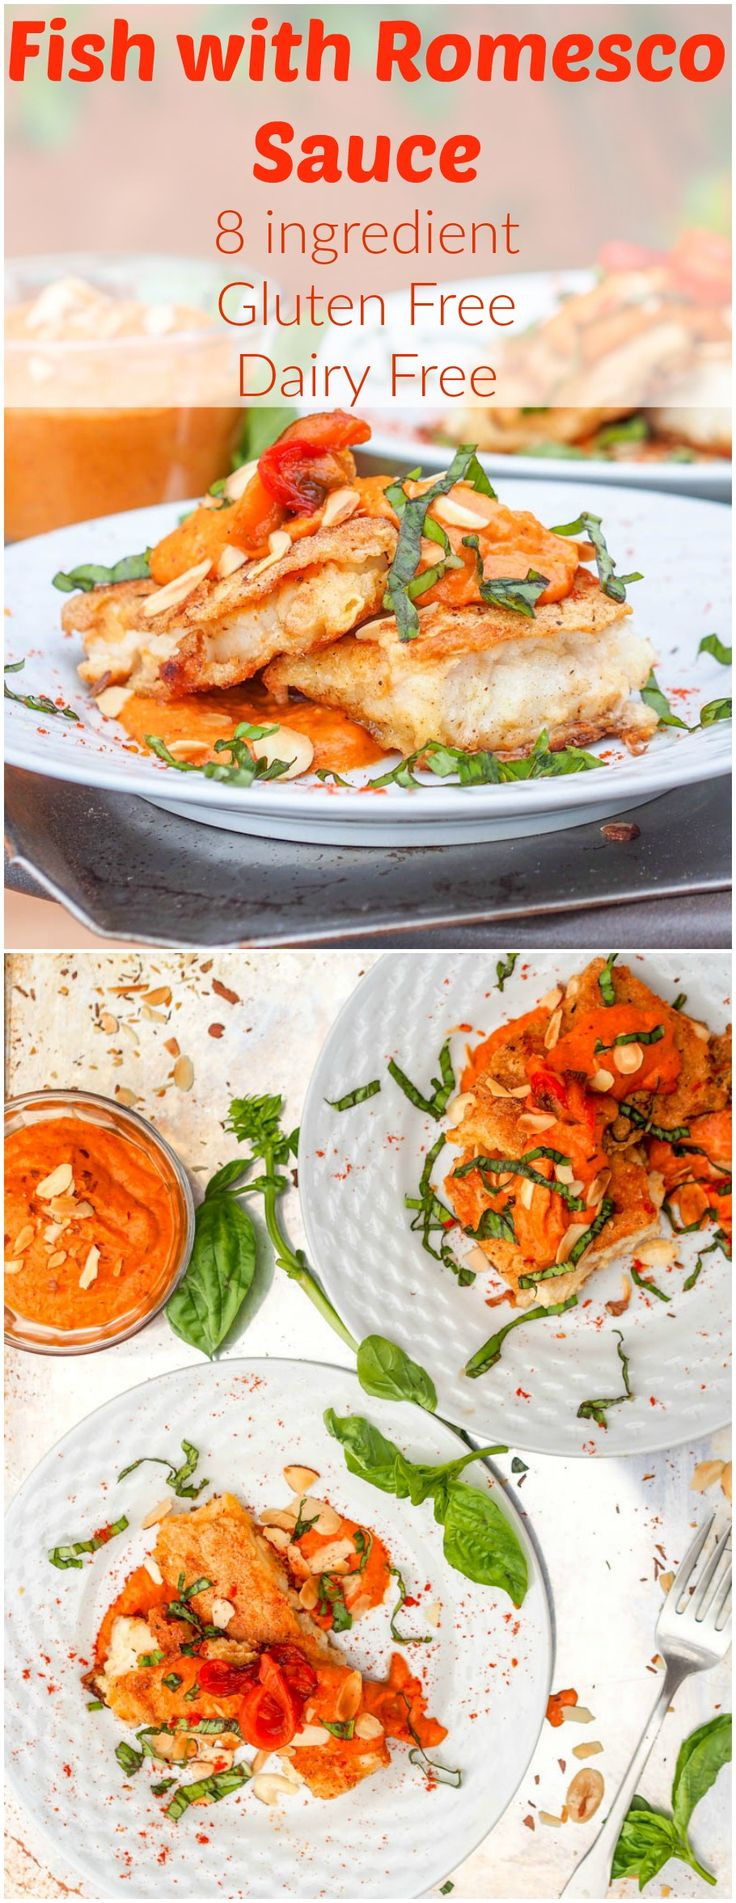 Gluten Free Sauce Recipes  Red Snapper Fish with Romesco Sauce GF DF